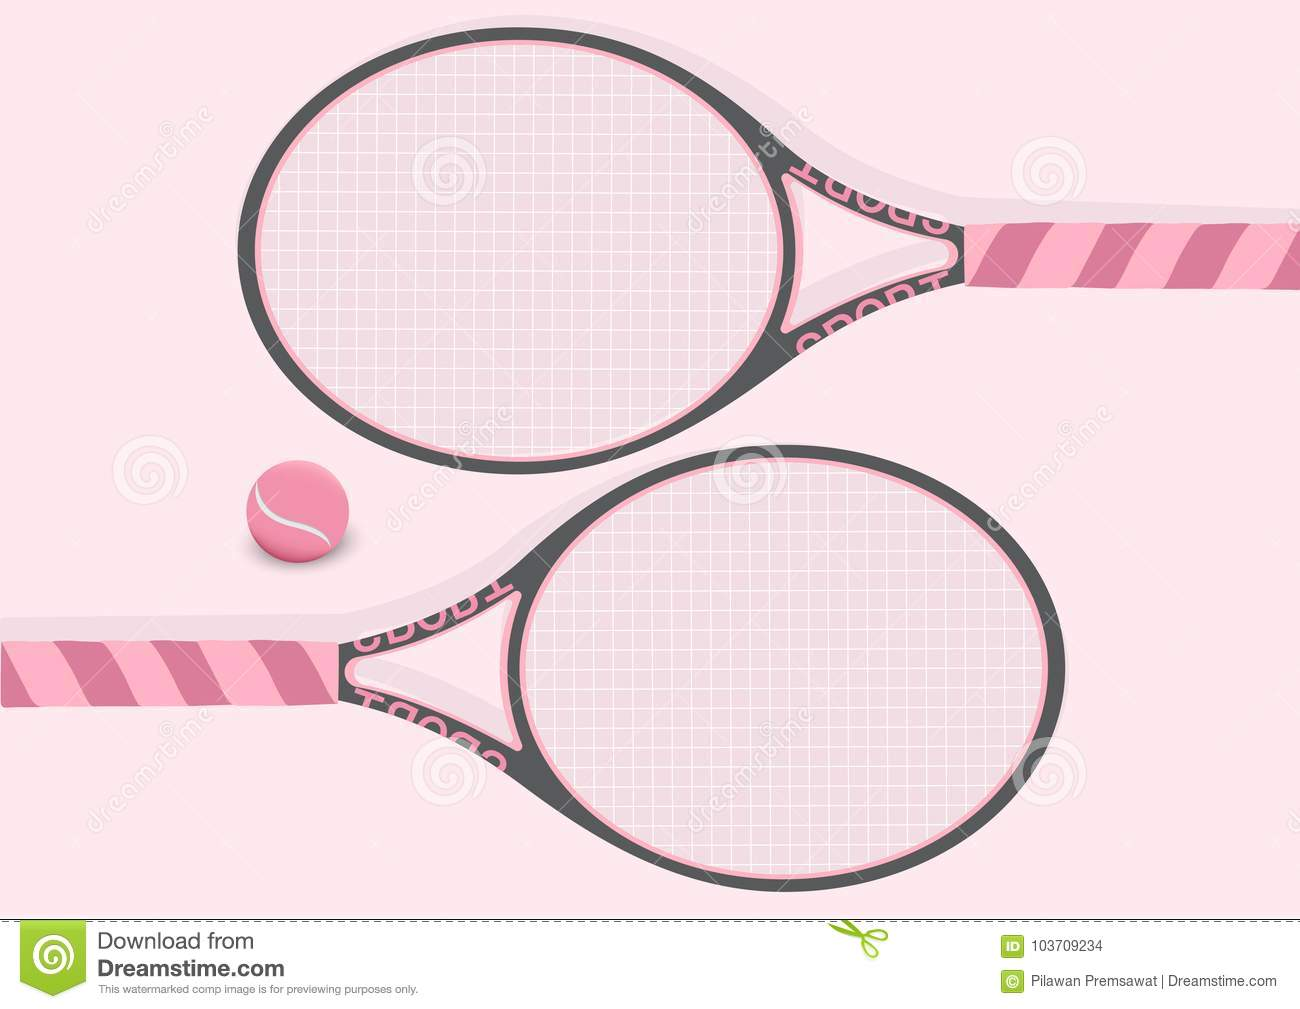 Pastel Pink Tennis Racket And Tennis Ball Background Illustration